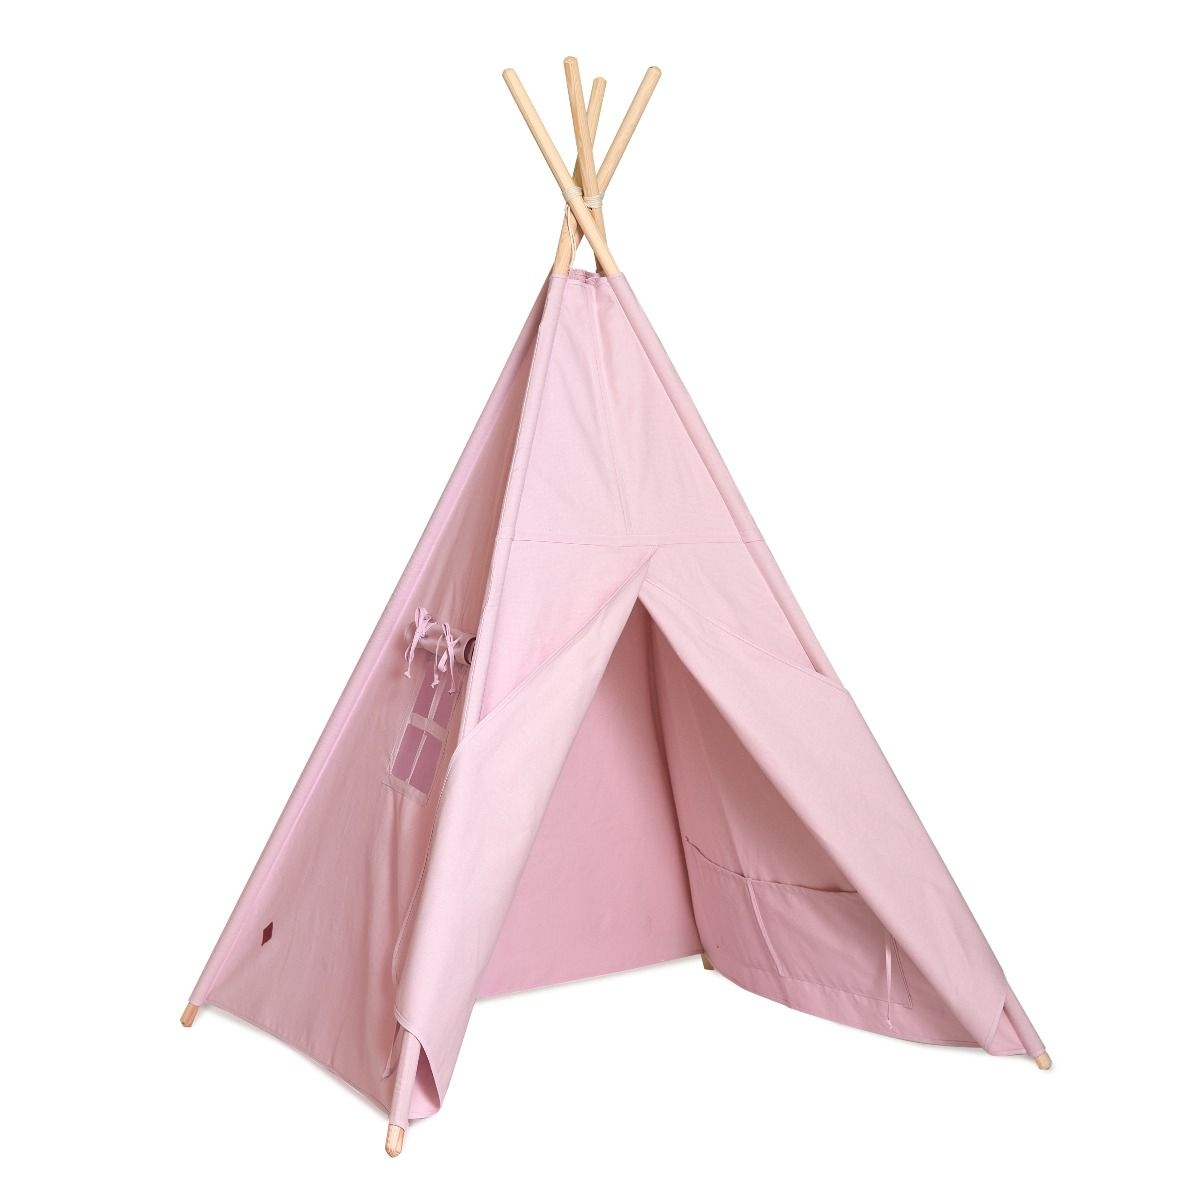 Tipi-Zelt - Powder Pink